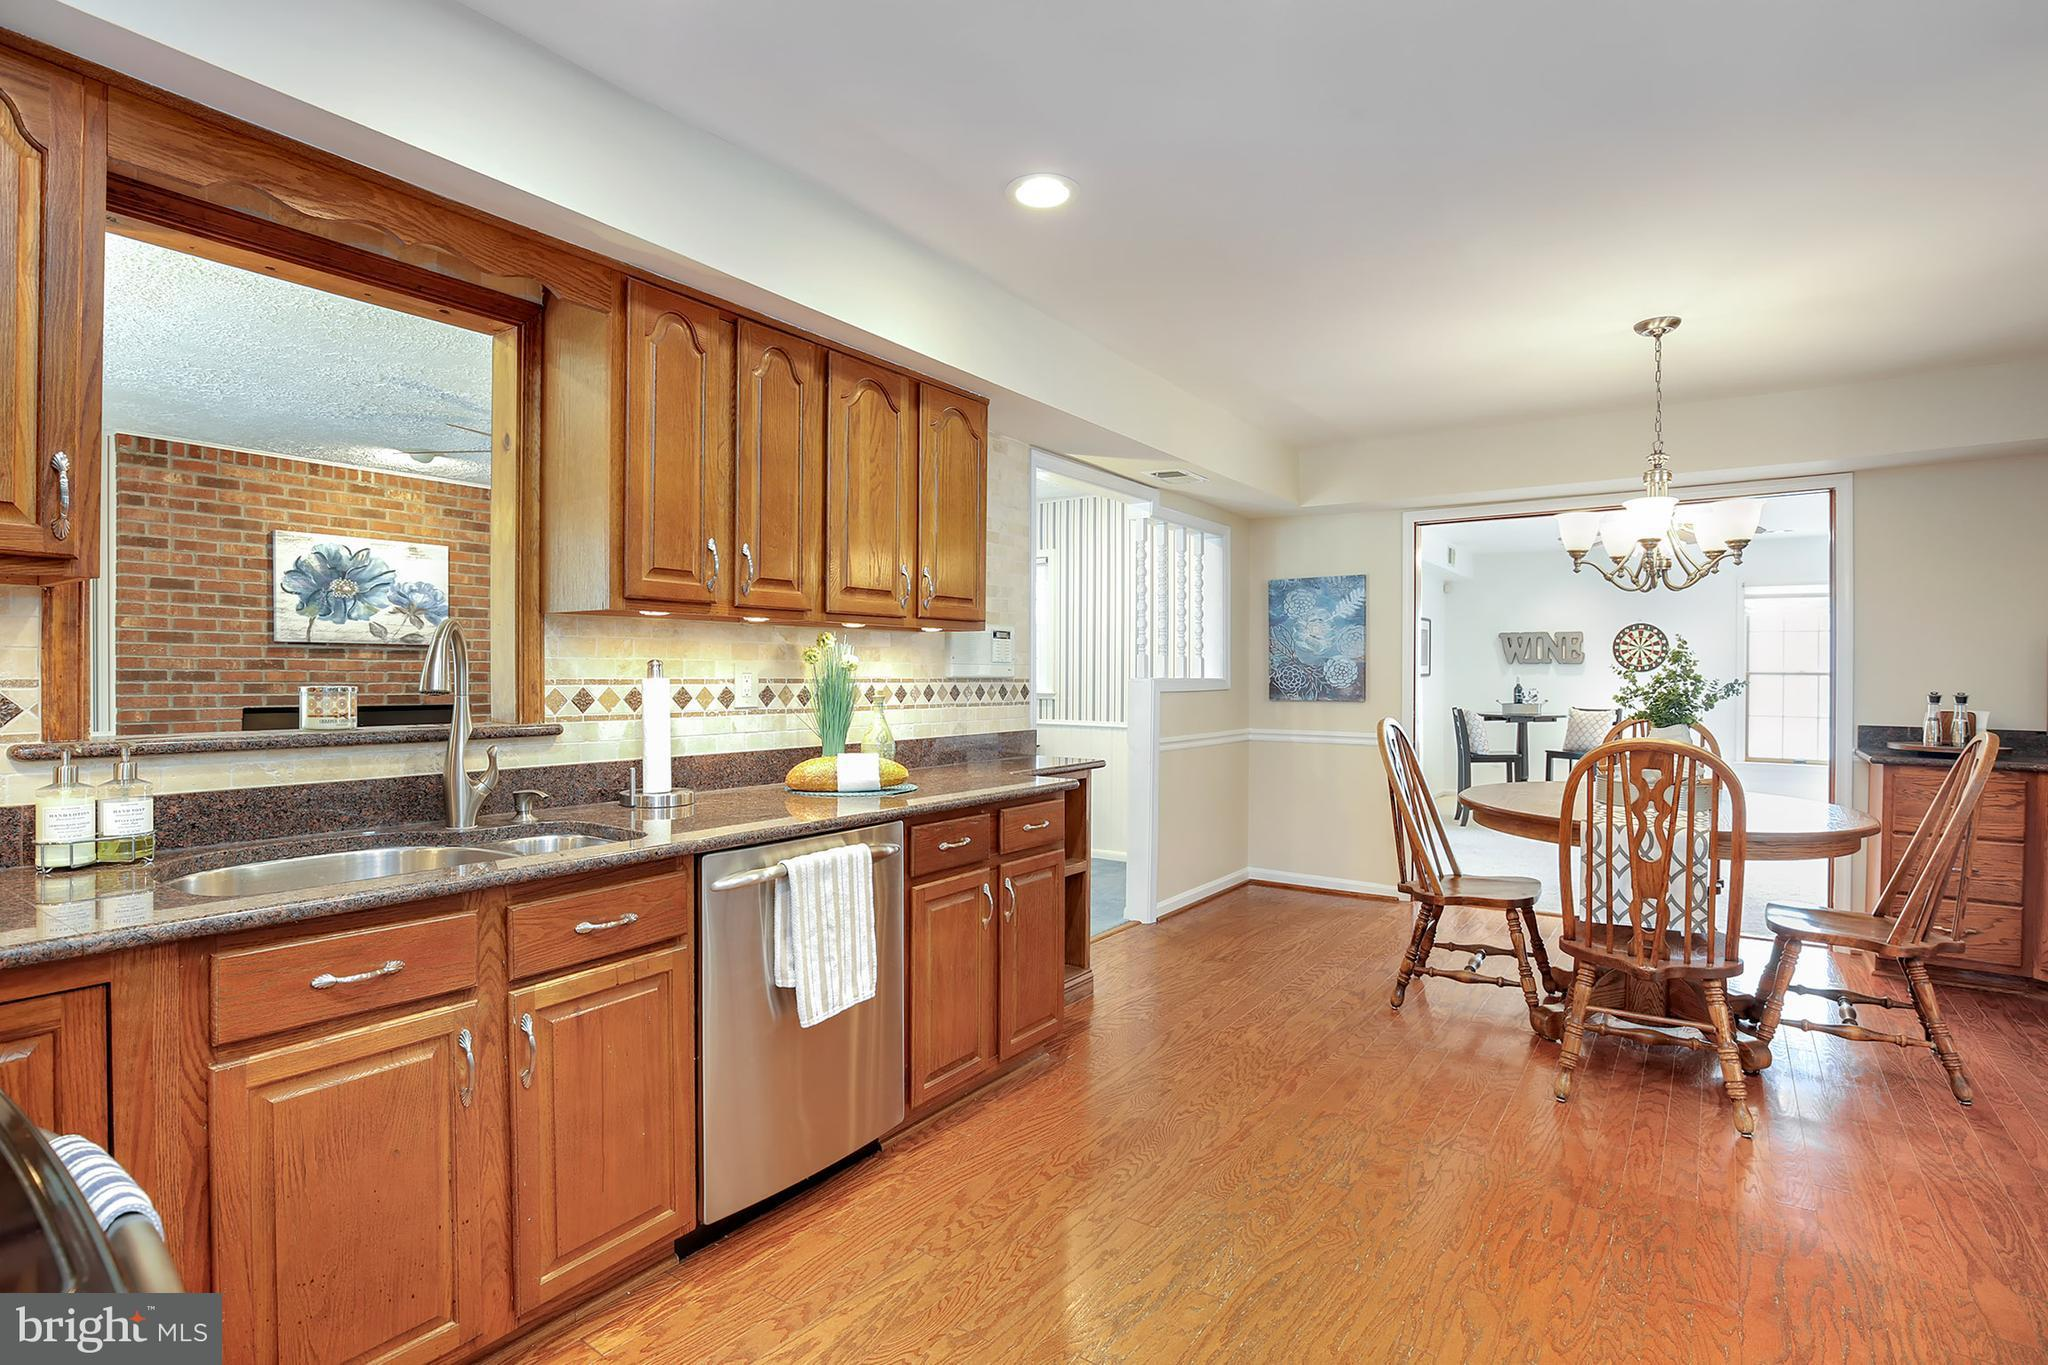 6803 MOON ROCK COURT, Alexandria, VA, 22306 - SOLD LISTING, MLS ...